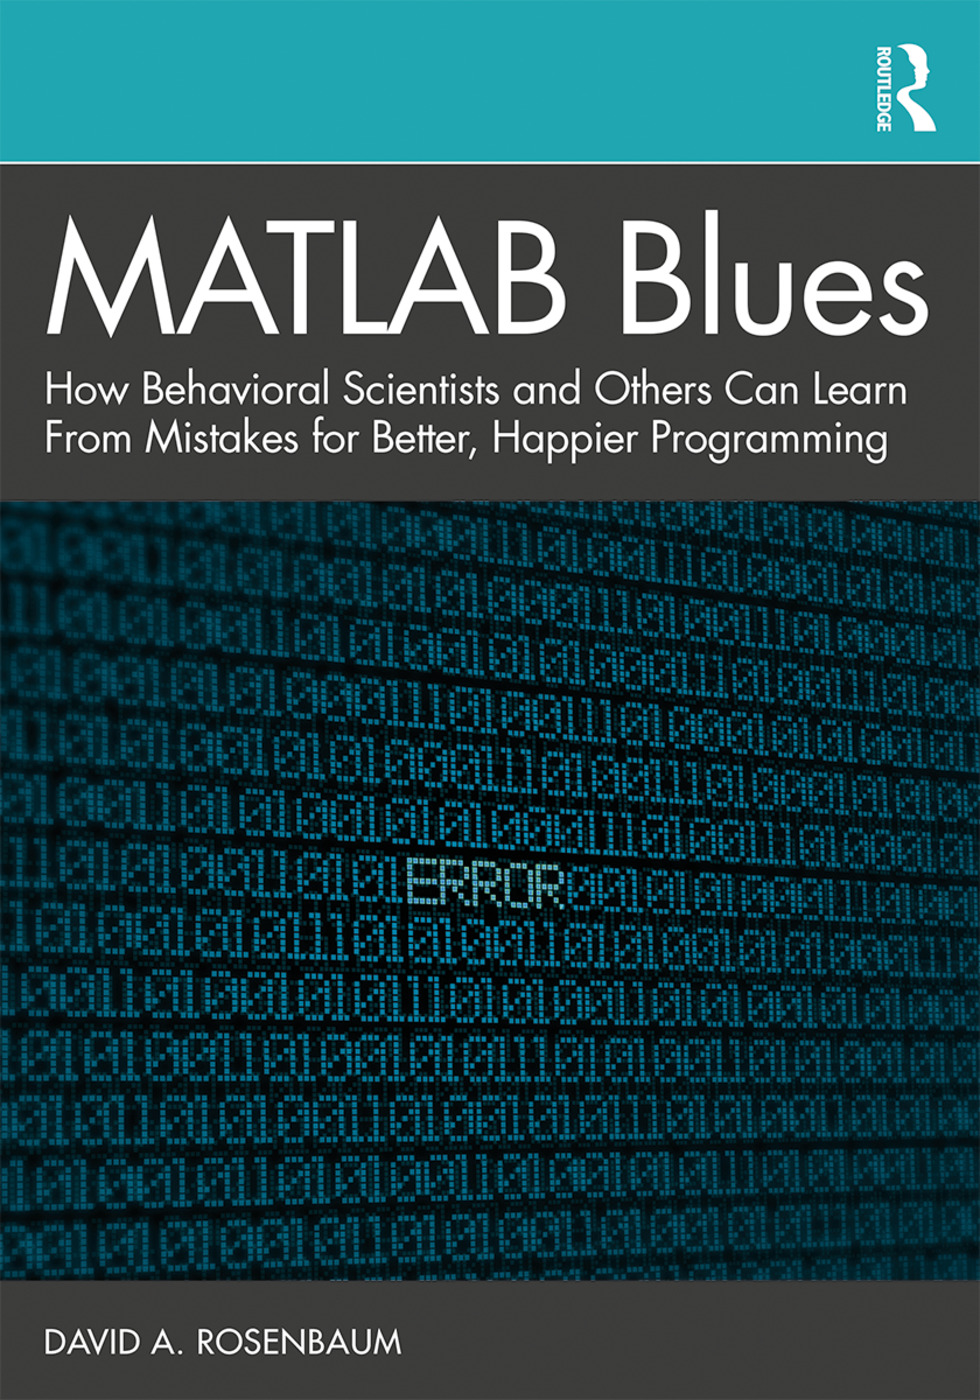 MATLAB Blues: How Behavioral Scientists and Others Can Learn From Mistakes for Better, Happier Programming book cover